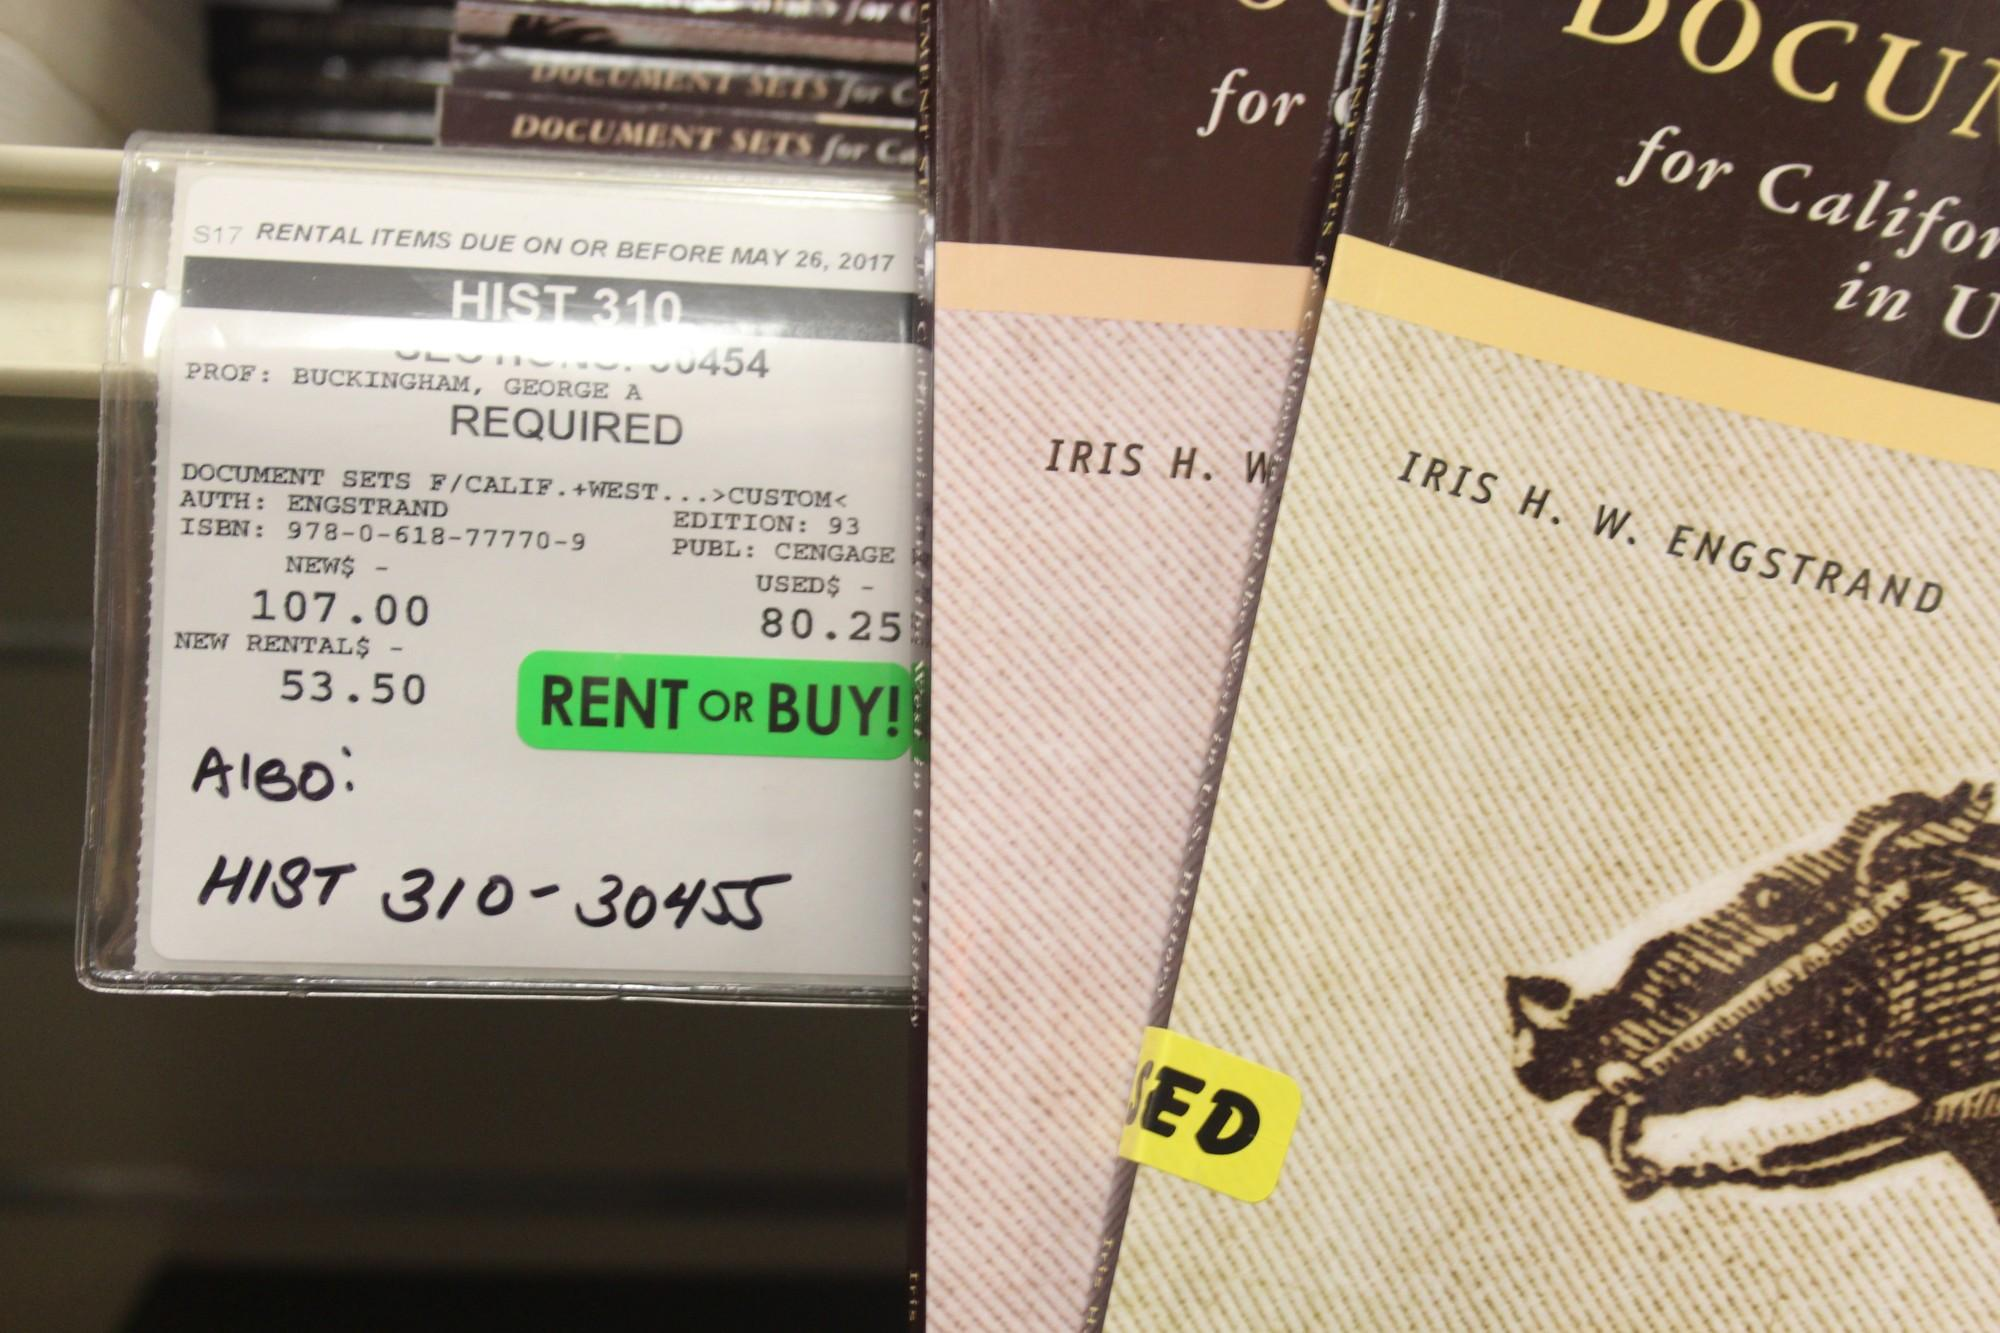 It's usually about half the price to rent a book instead of purchasing it new. Photo credit: Brian Silverman